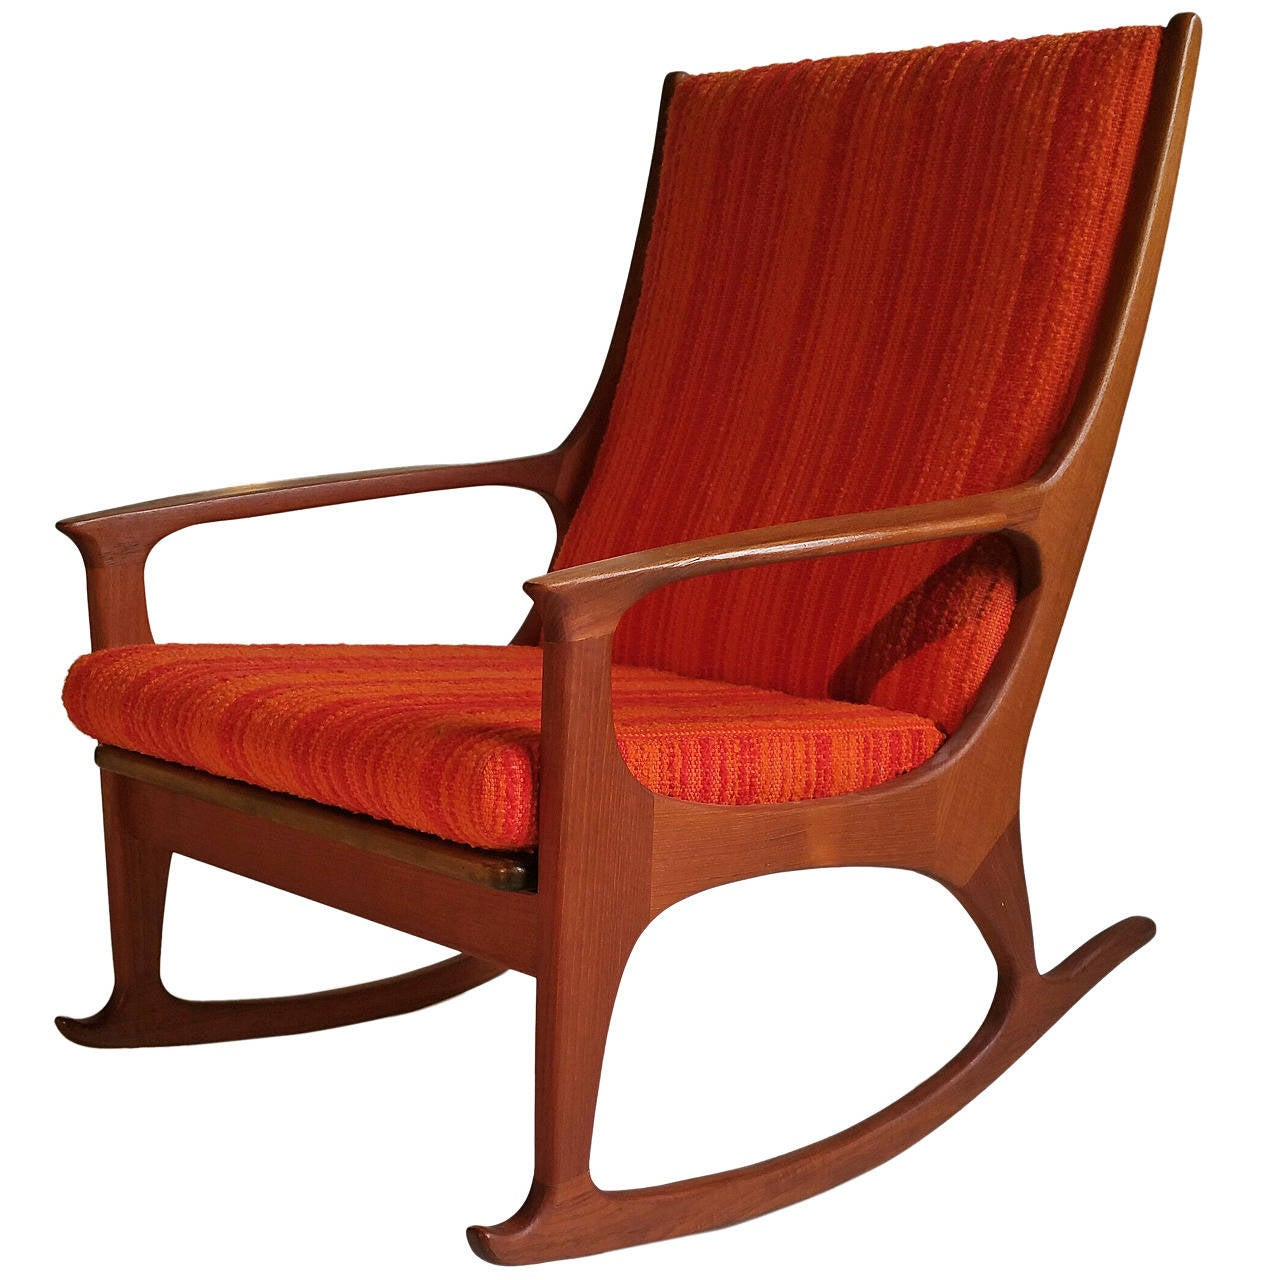 Midcentury danish modern teak rocking chair at 1stdibs - Scandinavian chair ...